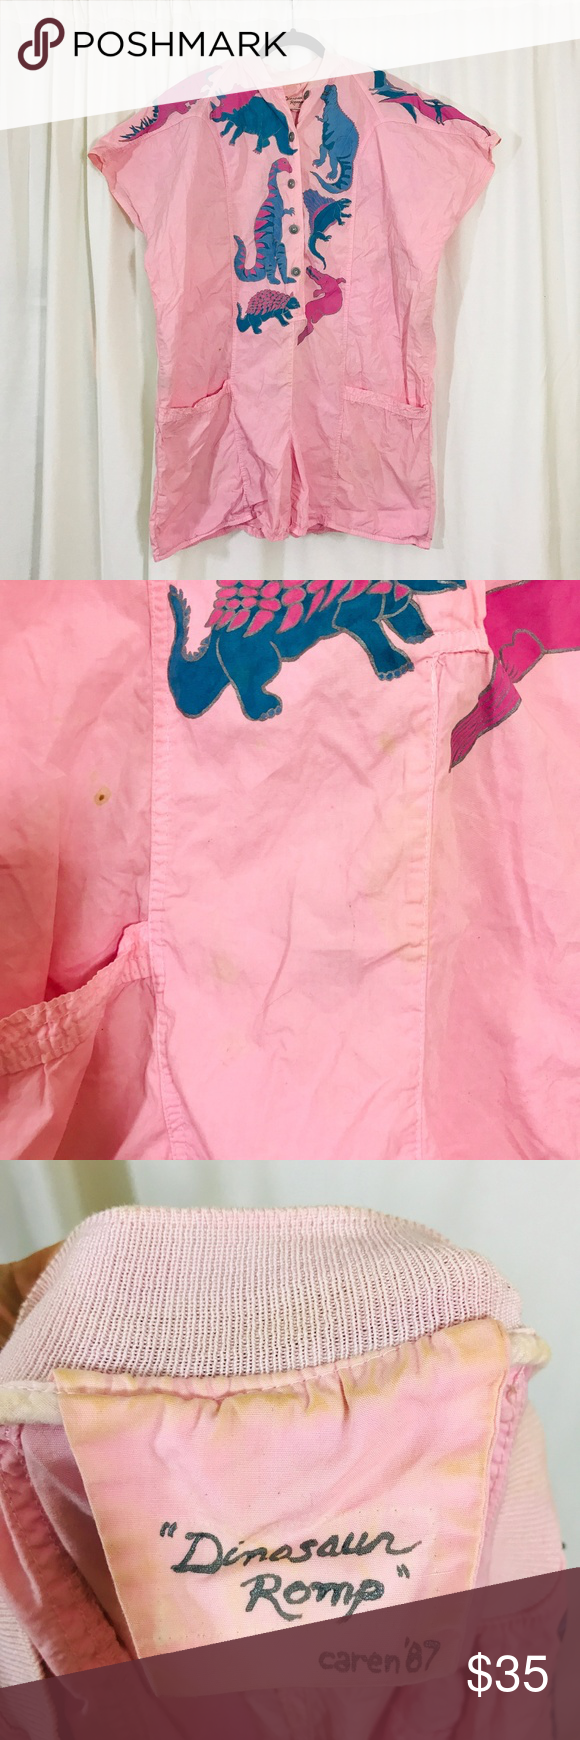 1980s Retro | Dinosaur Novelty Print Romper 1980s Vintage Retro | Pastel Pink Dinosaur Novelty Print Romper Jumpsuit up for grabs!  Size XL.   In good use condition! Has some spots from over the years(shown in pics above). This romper is literally the best thing I've ever seen. I'm so excited for who ever this goes home with! This piece is from 1987 and you bet you can rock this amazing jump suit anytime, anywhere.  This romper is pale pink & features a bitchin dino print.  Also features a butto #dinosaurpics